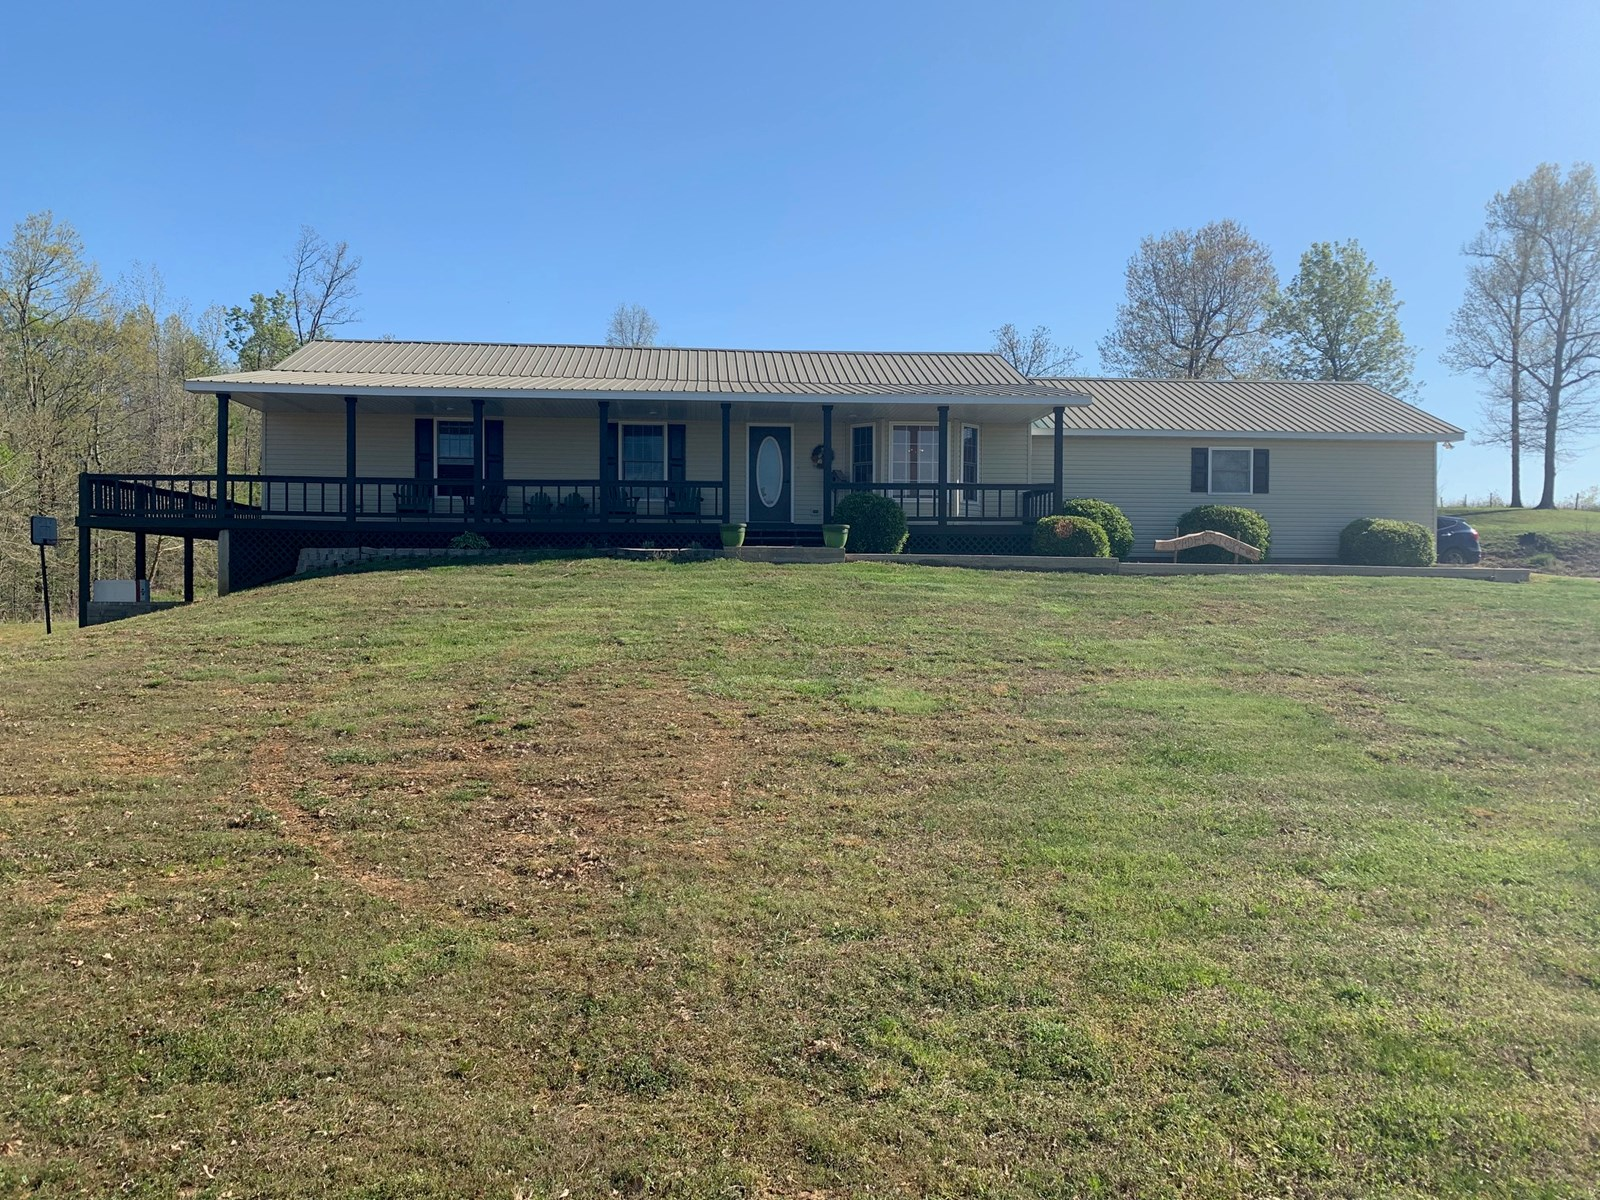 5 bedroom 3 bath home on 3 acres